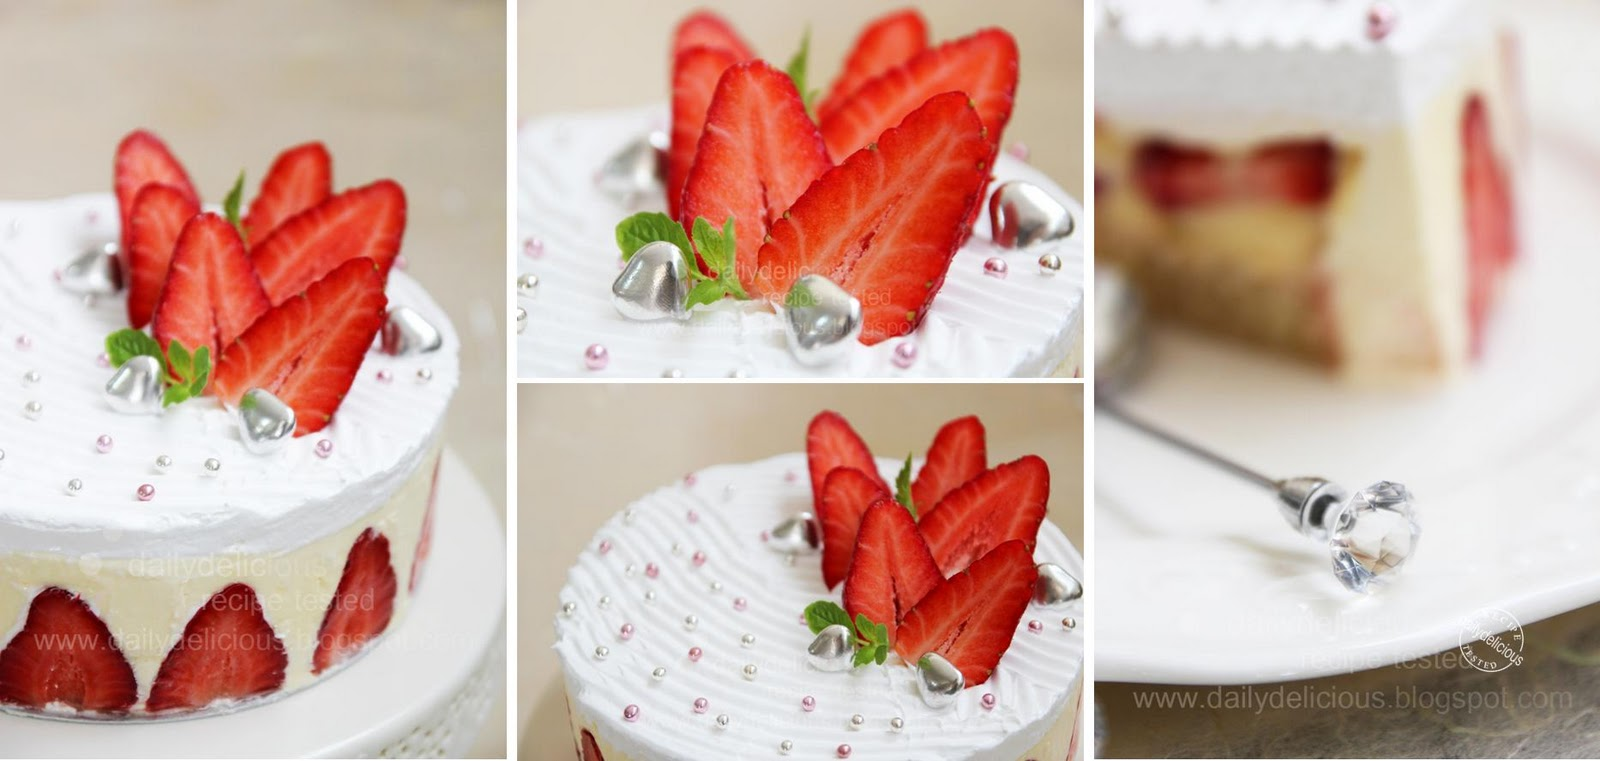 Dailydelicious Fraisier Beautiful French Strawberry Cake